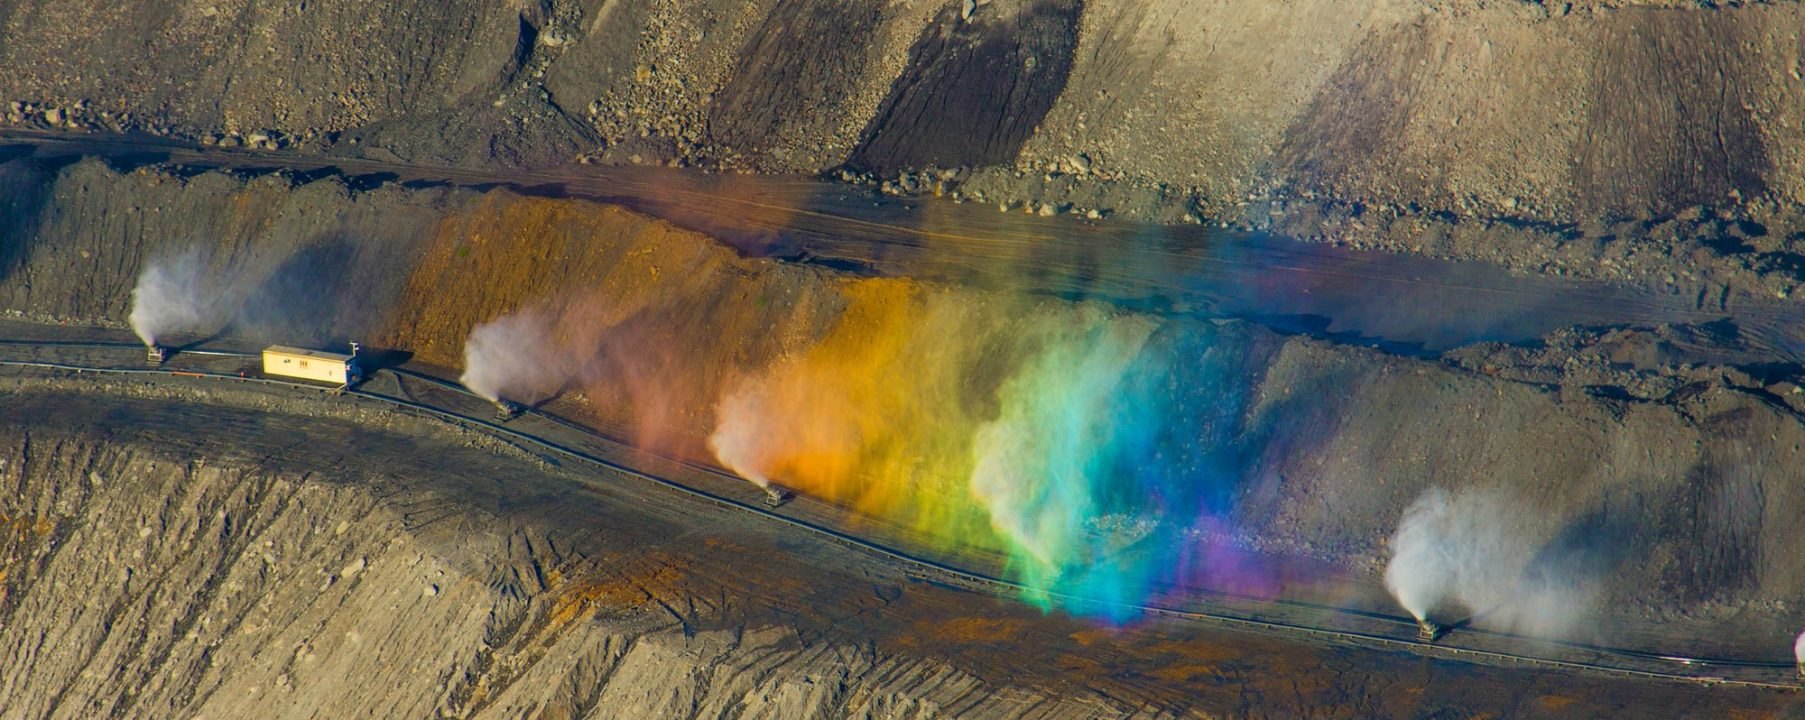 Mining Aerial Helicopter Image Australia